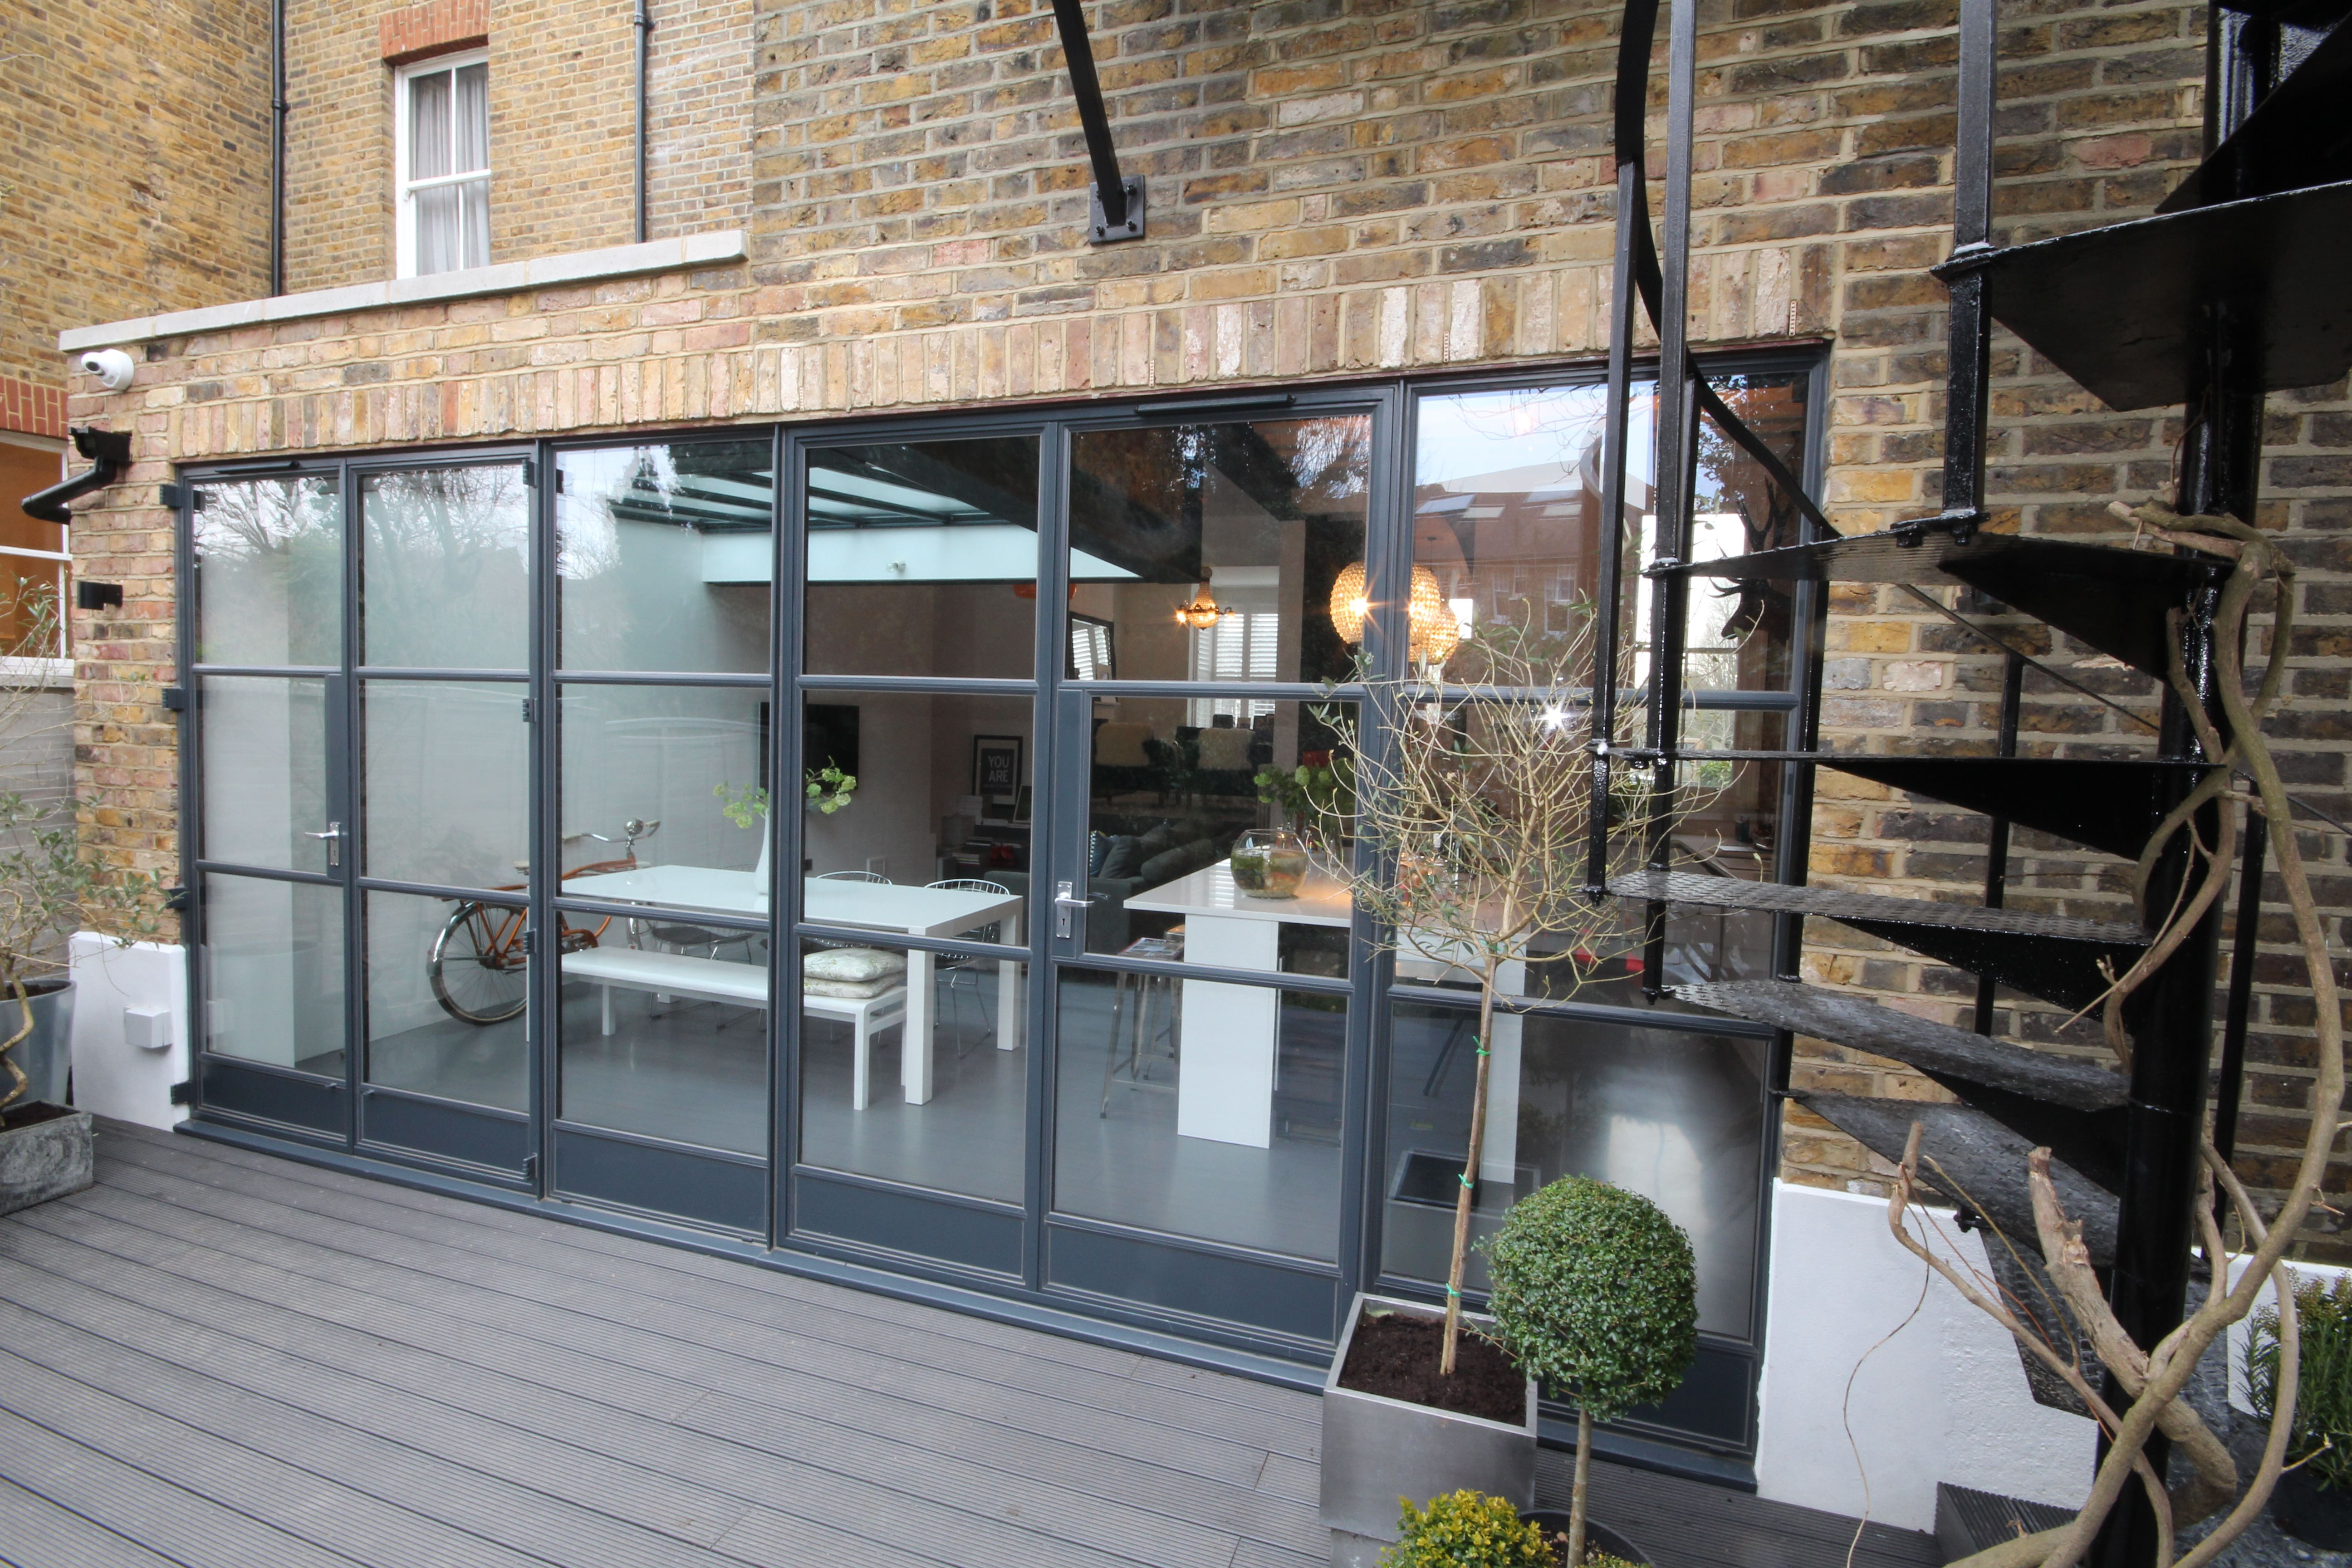 Refurbishment of a 3 storey townhouse in sw london featuring an refurbishment of a 3 storey townhouse in sw london featuring an eclectic industrial style kitchen with rubansaba